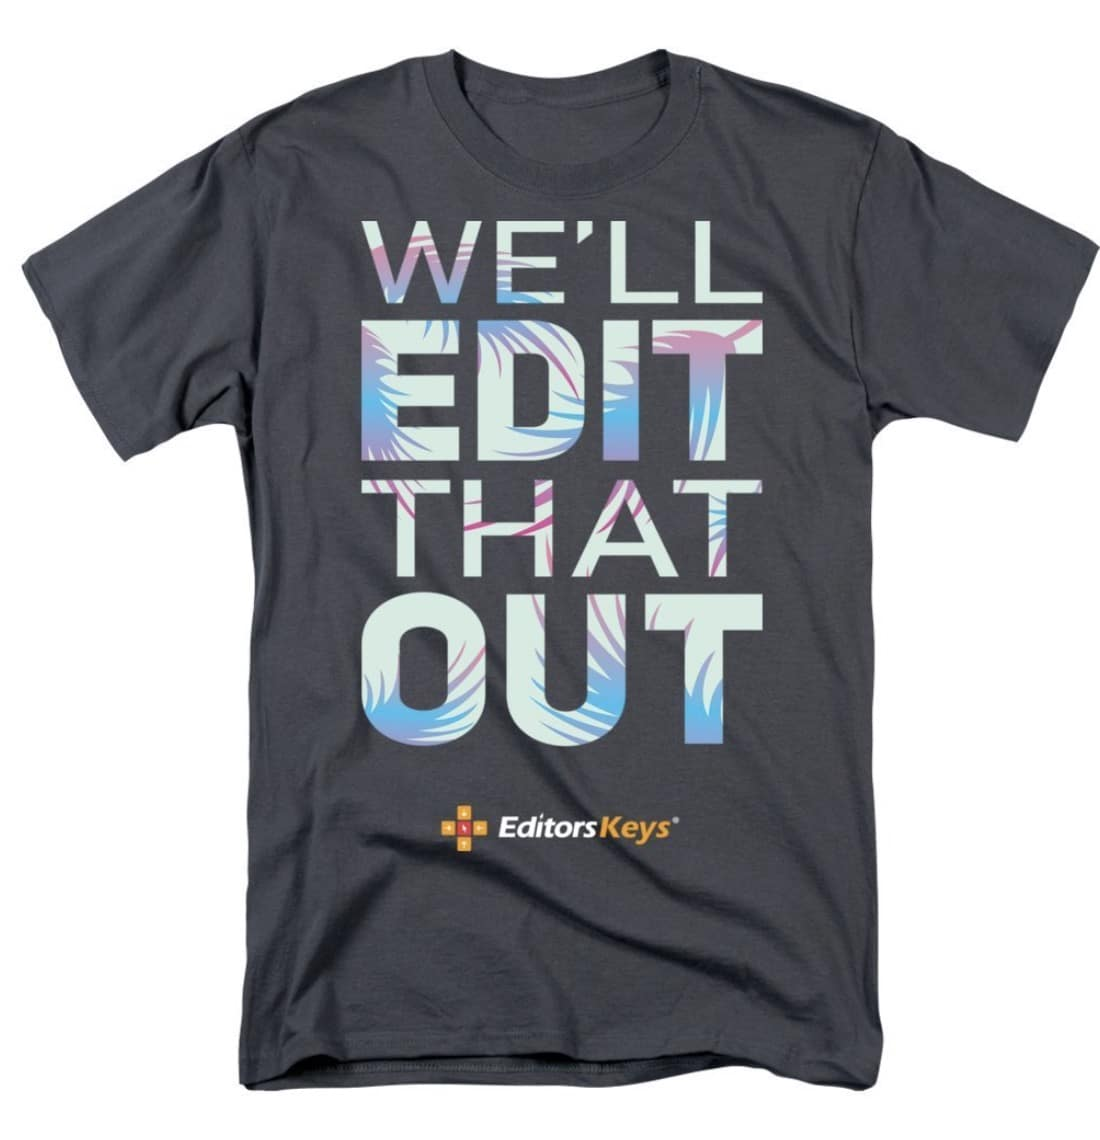 Christmas Gift Ideas for the Editor - 2019, the 10 Year Edition 9